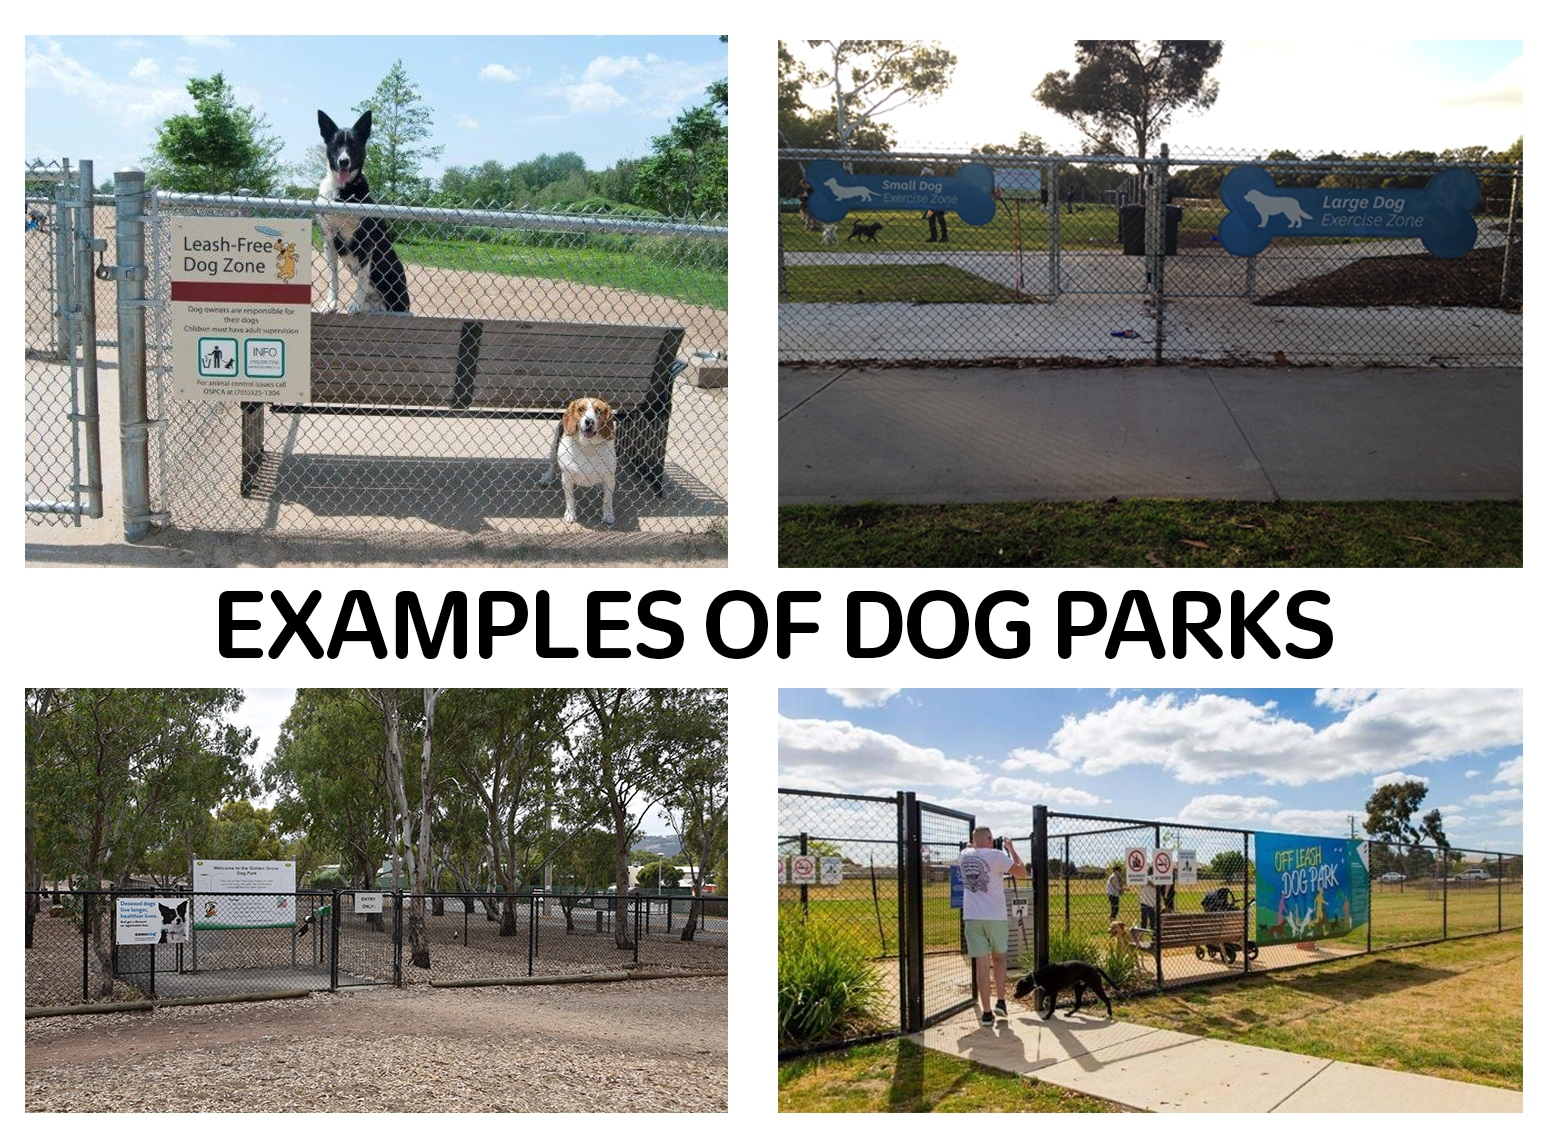 Dog park examples.jpg